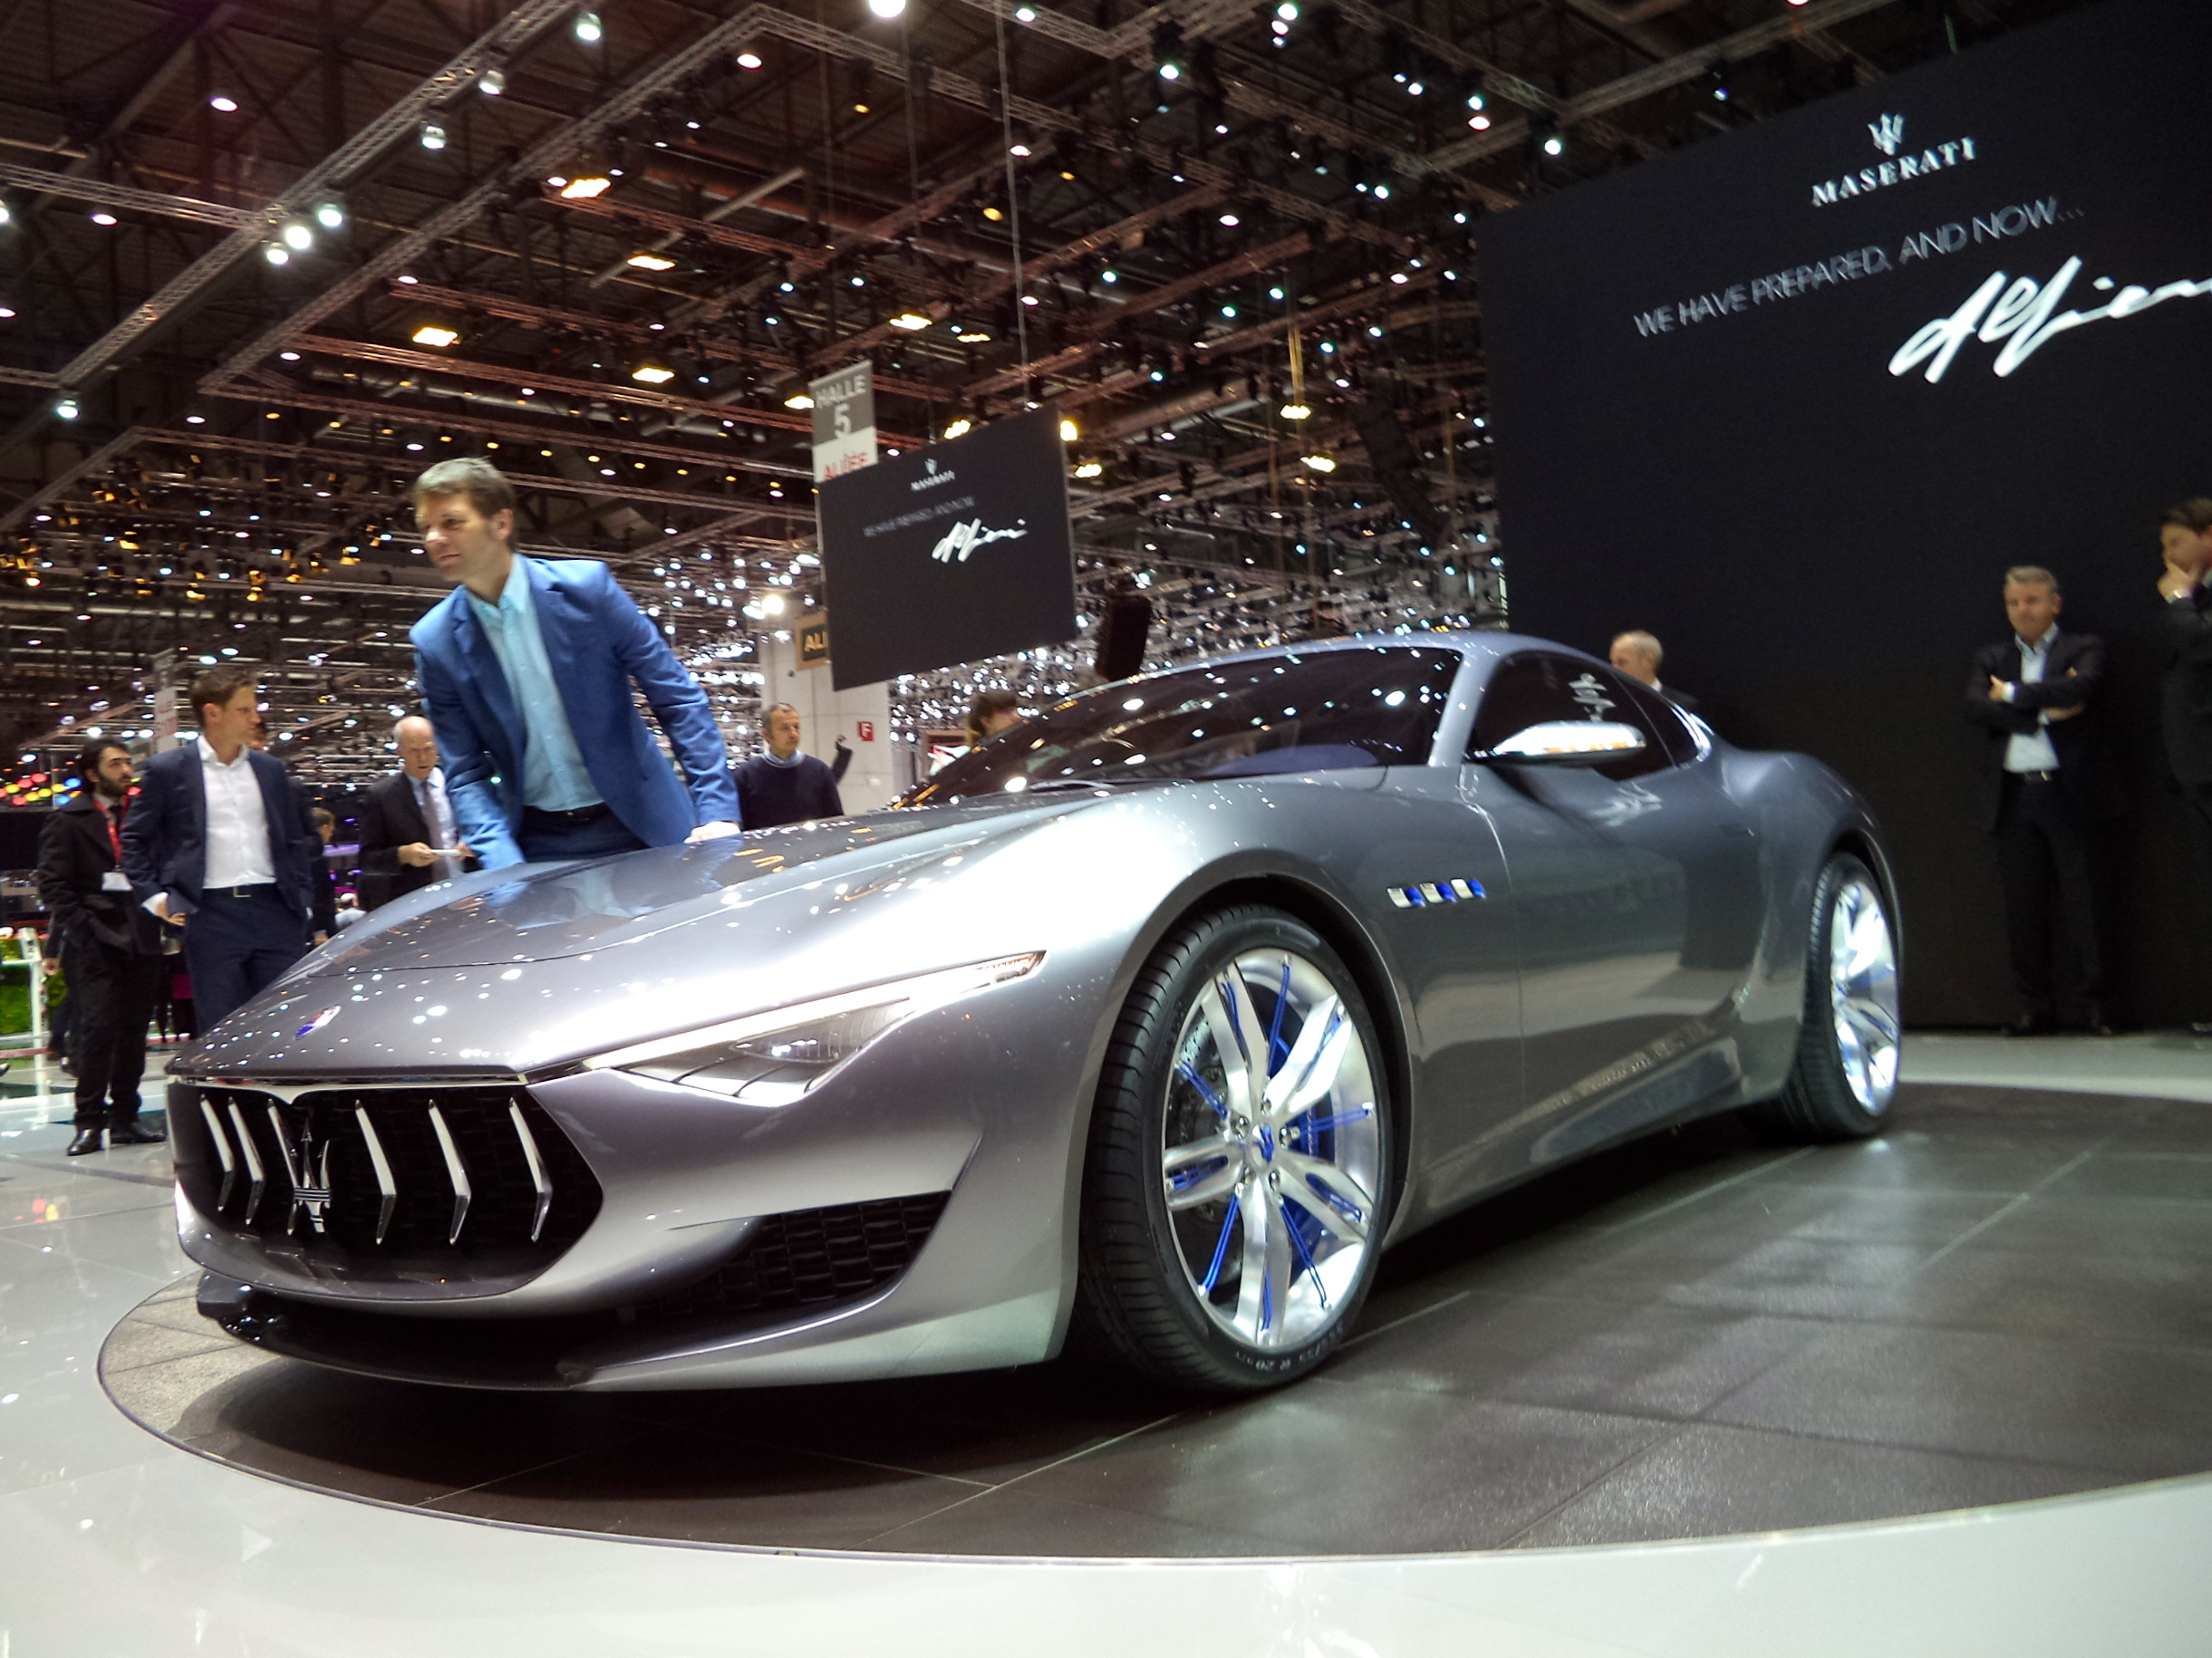 2014 geneva motor show maserati alfieri concept john leblanc 39 s straight six. Black Bedroom Furniture Sets. Home Design Ideas